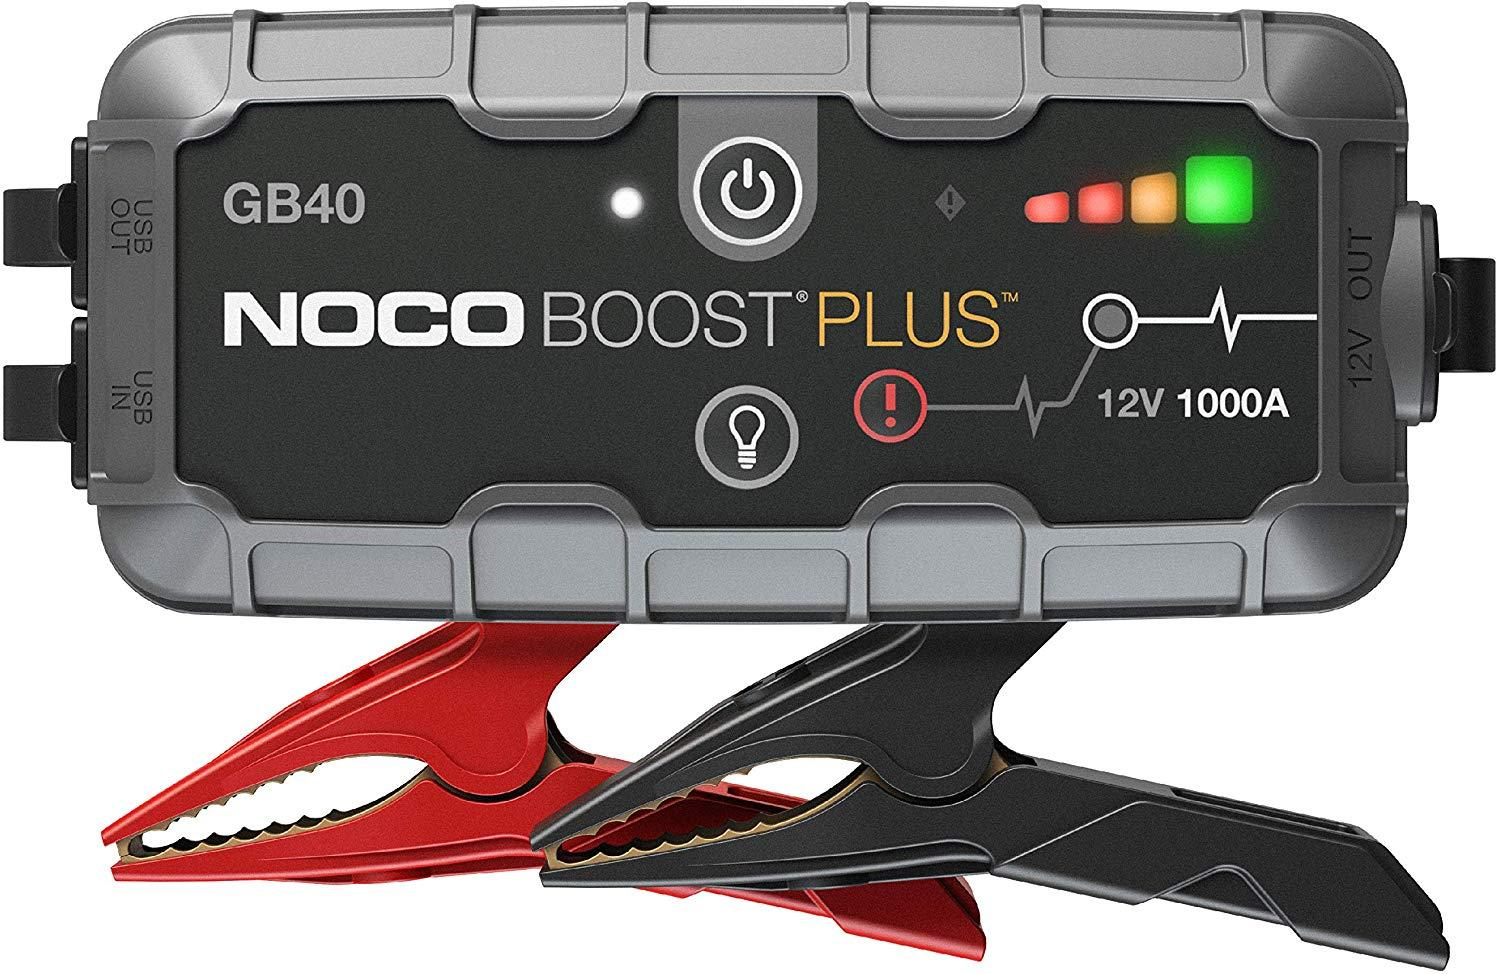 Noco Boost Plus GB40 1000A 12V Car Battery Jump Starter Pack for $63.31 Shipped